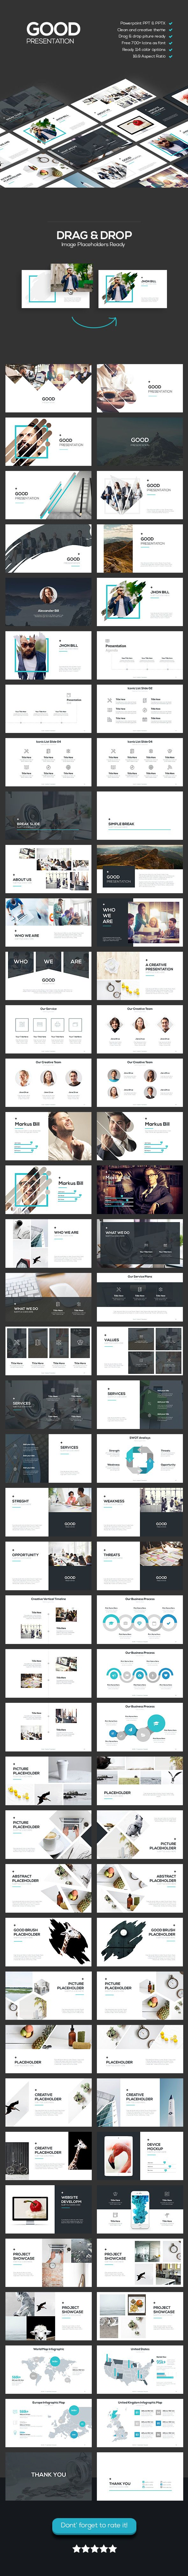 Good - Creative PowerPoint Template. Download here: https://graphicriver.net/item/good-creative-theme/17587186?ref=ksioks